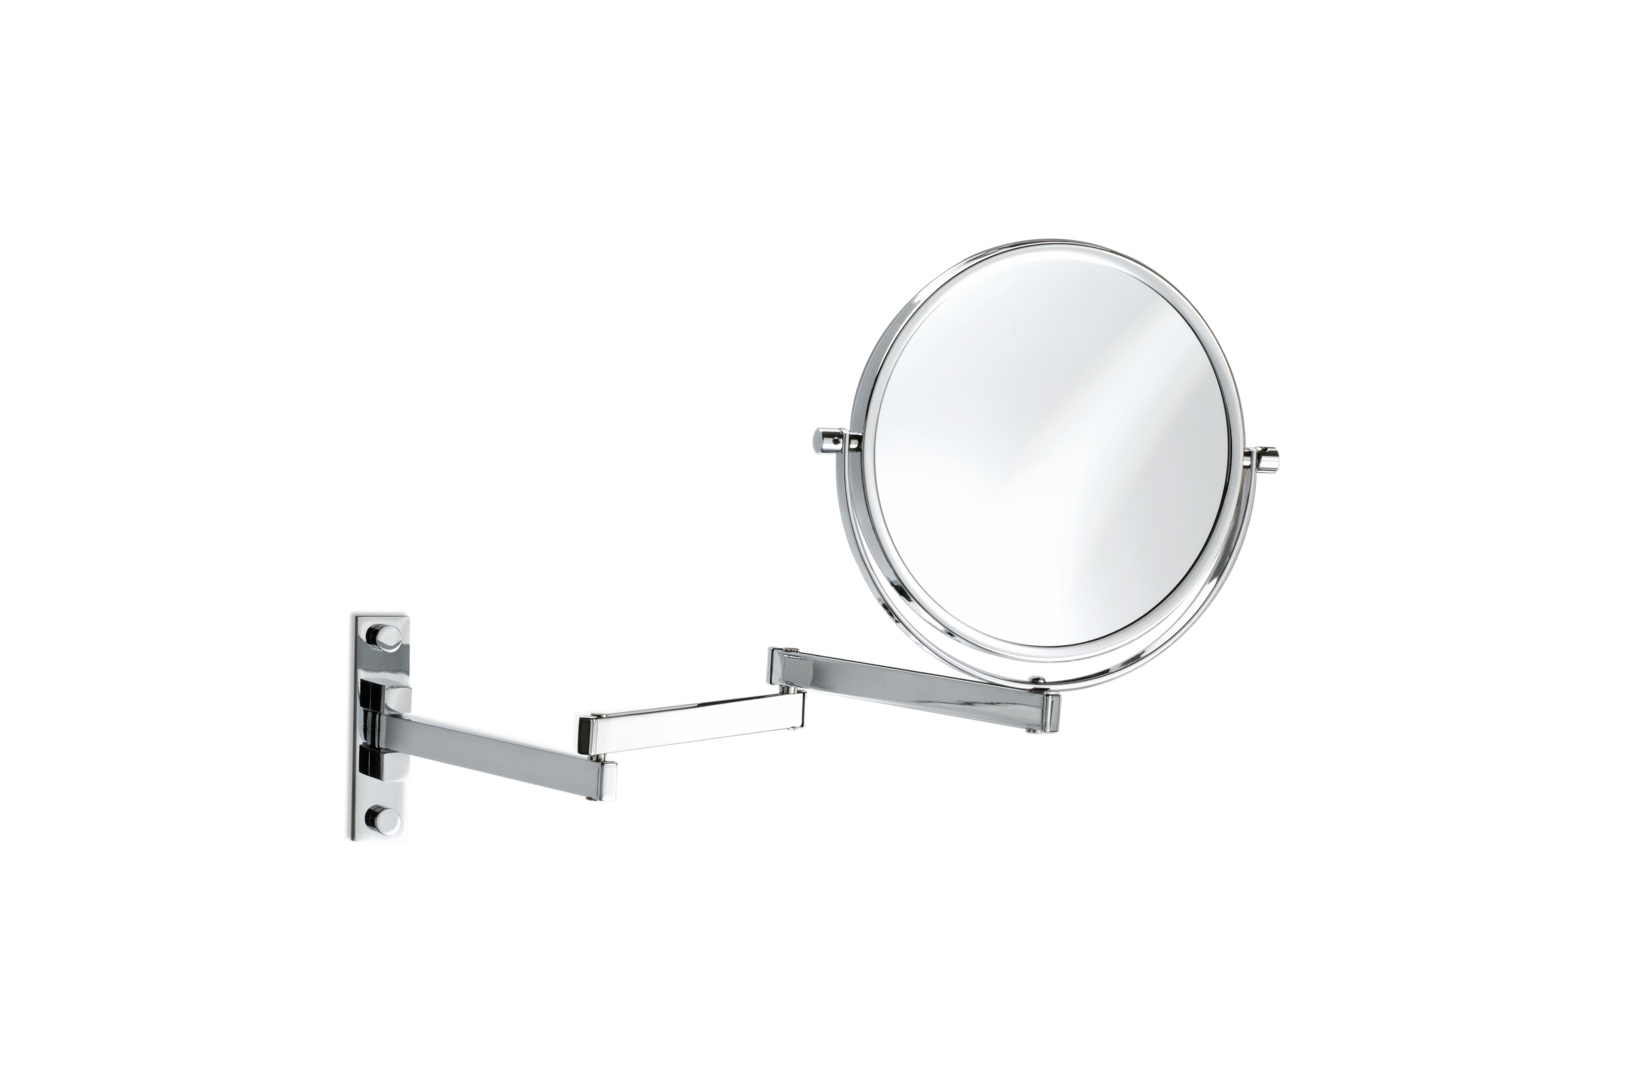 Decor Walther 0101100 DW-SPT 29 Cosmetic Mirror - Chrome